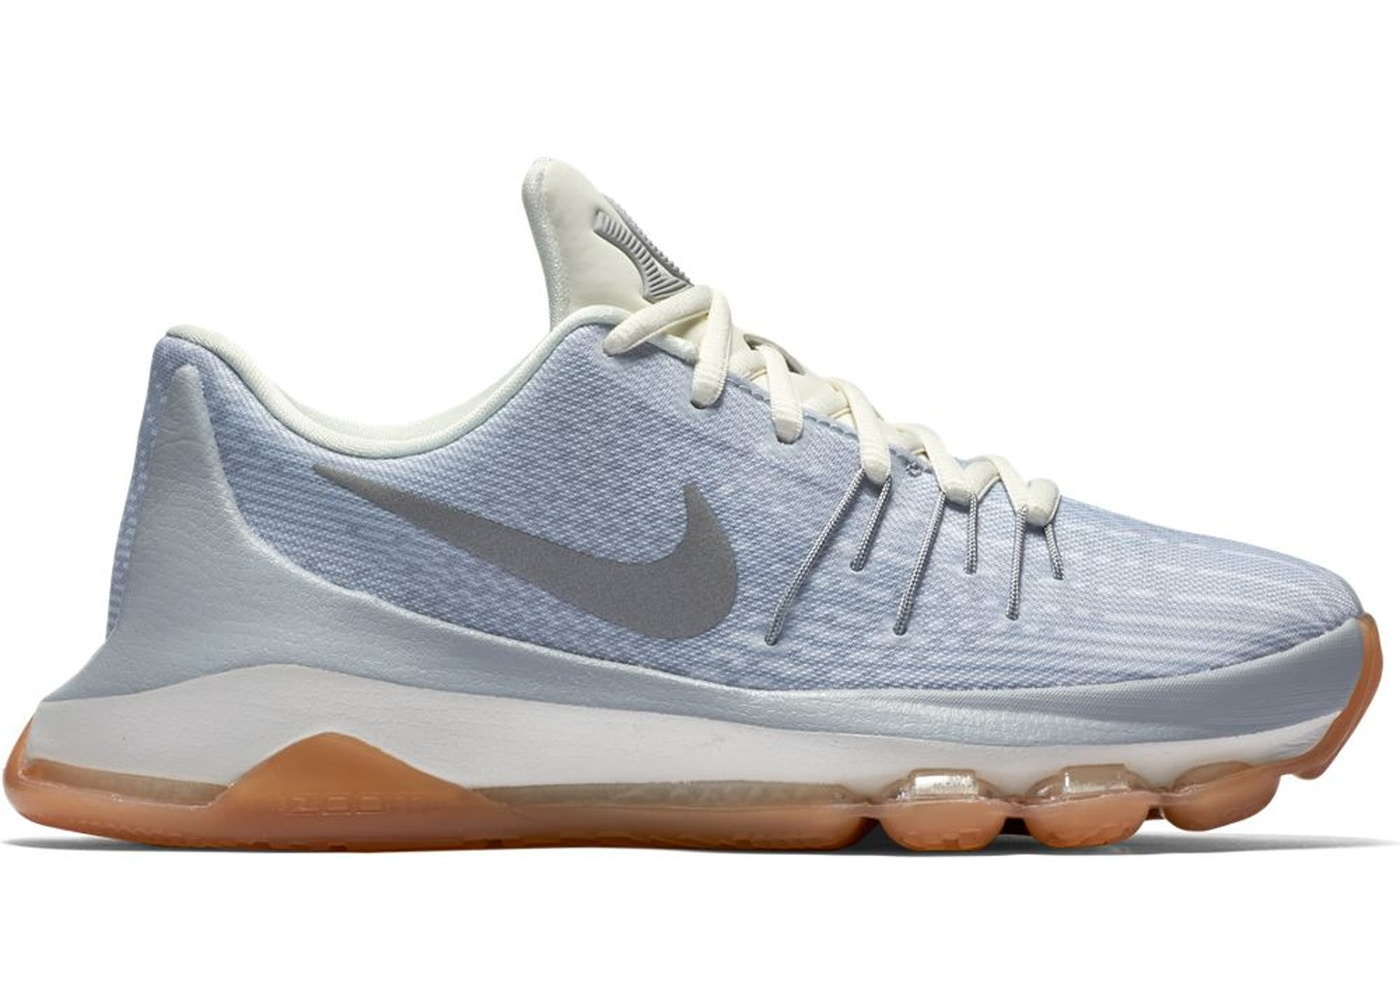 on sale b088a ee82c Nike KD 8 Shoes - Release Date